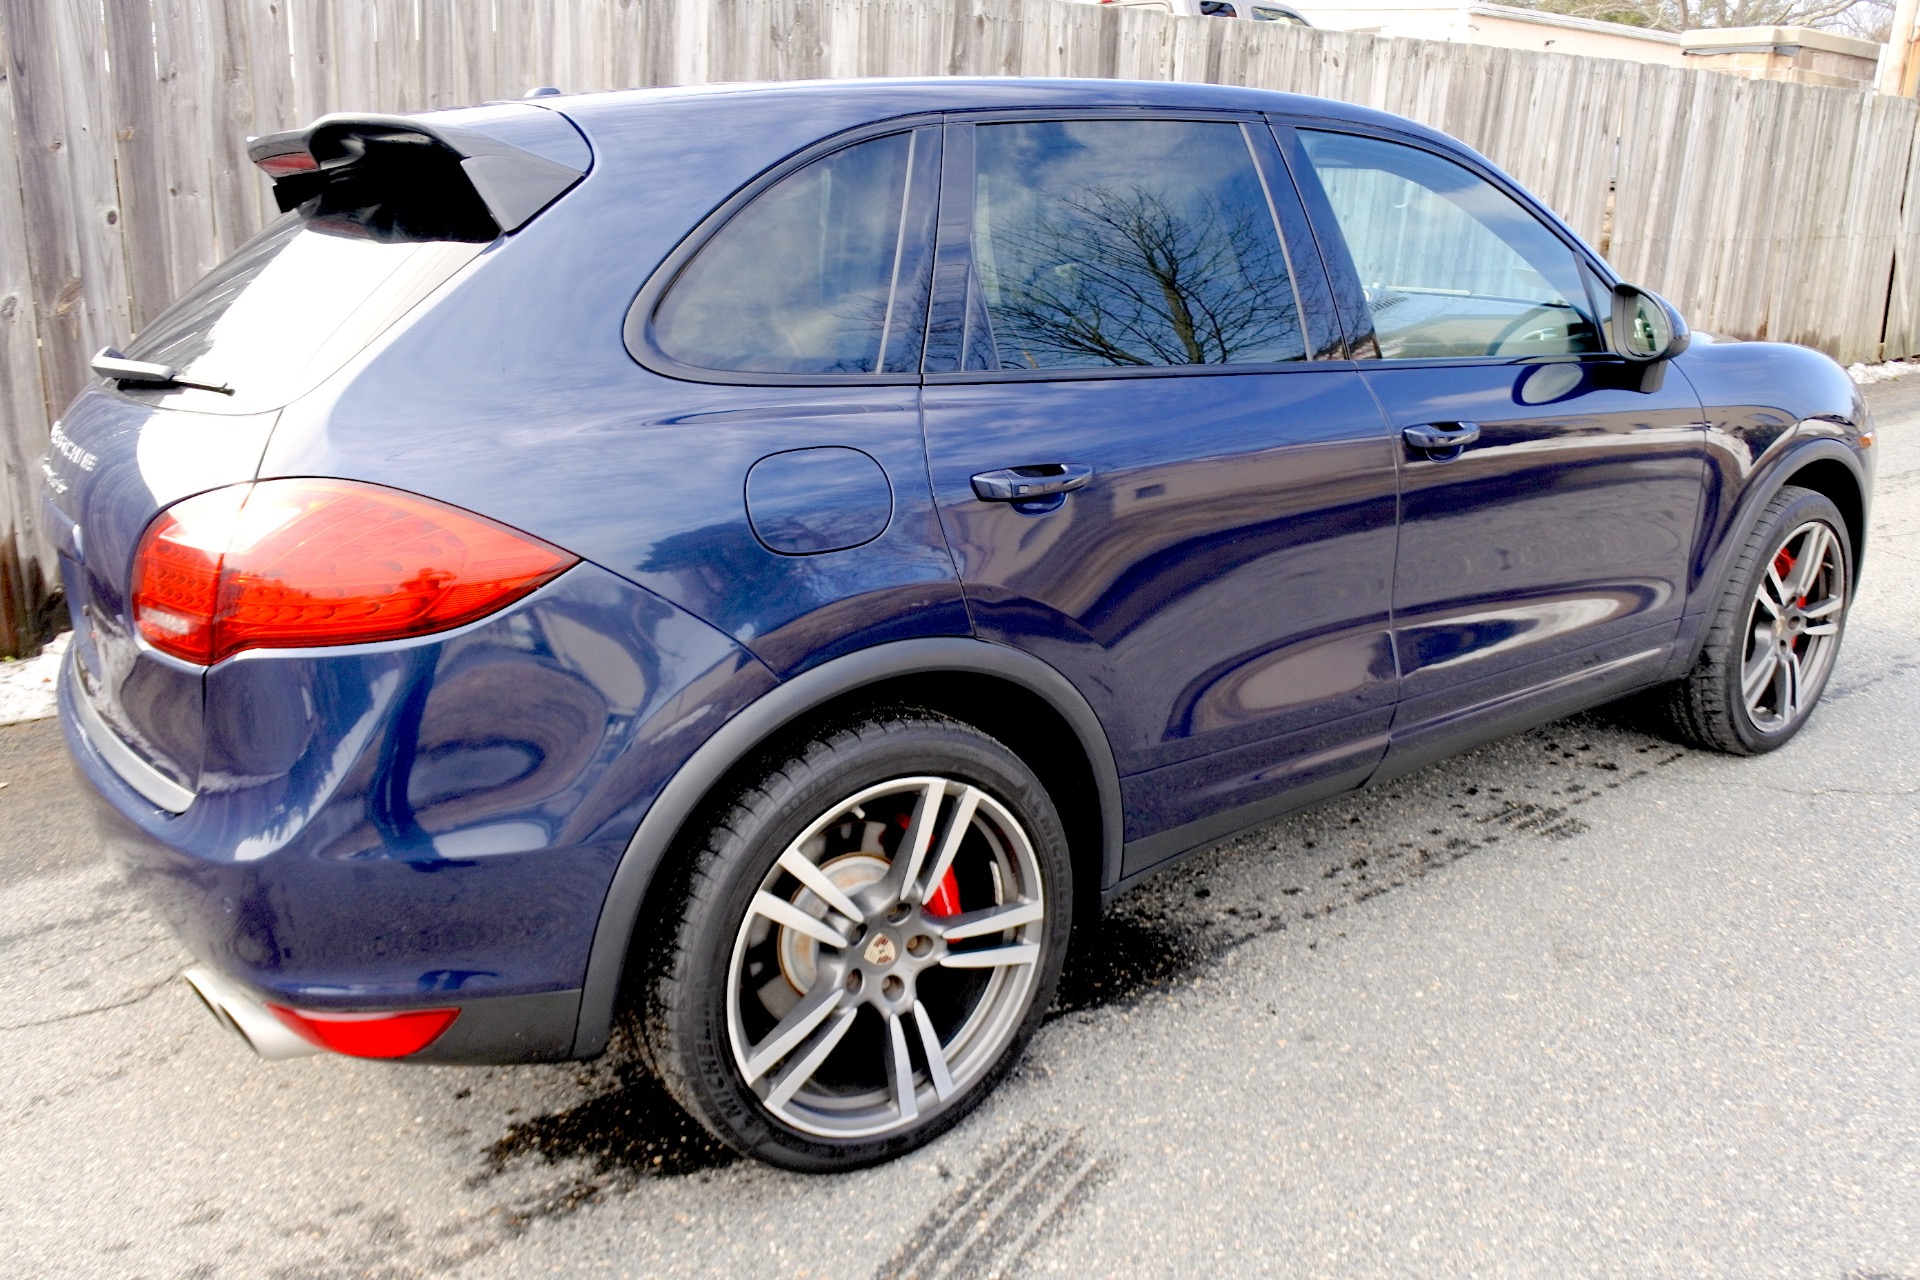 Used 2012 Porsche Cayenne Turbo AWD Used 2012 Porsche Cayenne Turbo AWD for sale  at Metro West Motorcars LLC in Shrewsbury MA 5